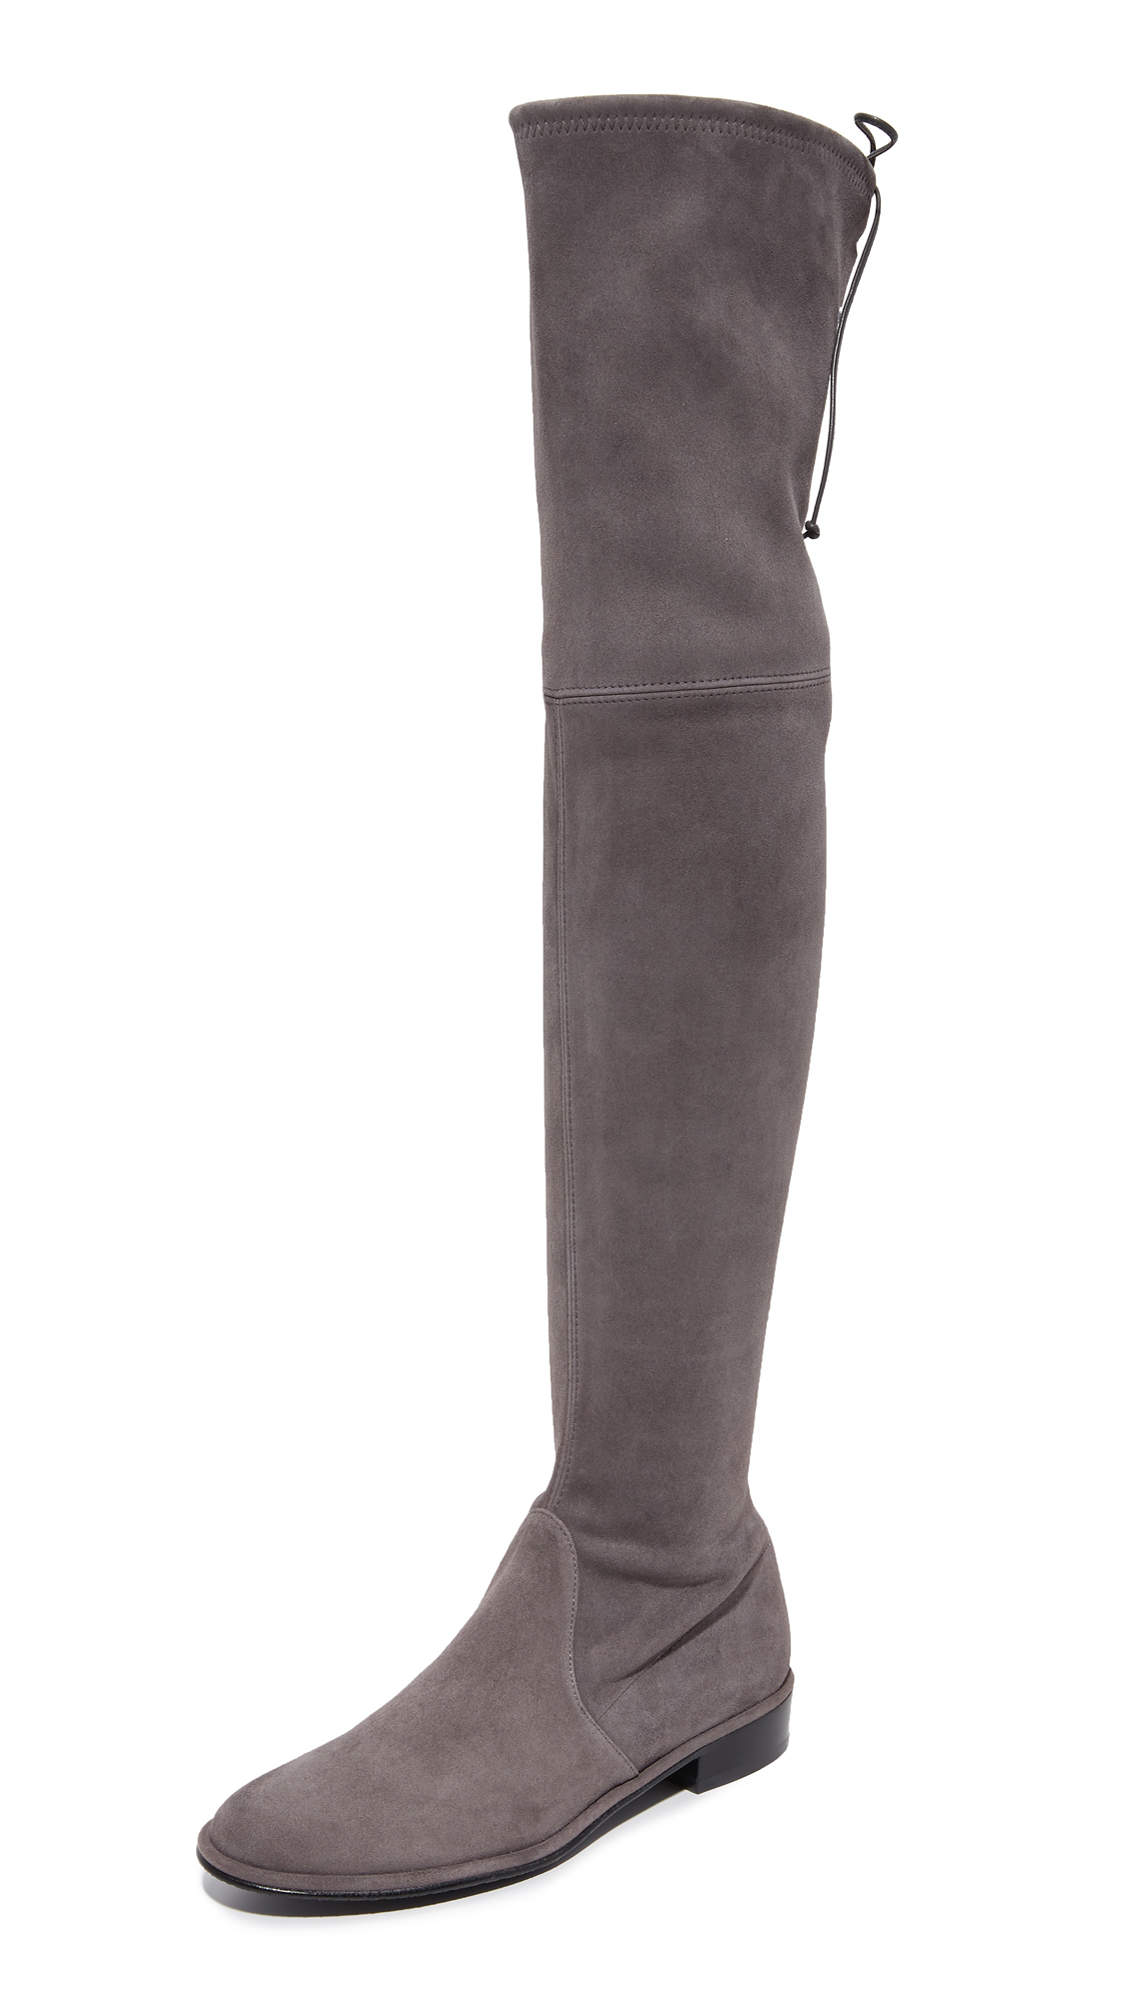 Stuart Weitzman Lowland Over the Knee Boots - Londra